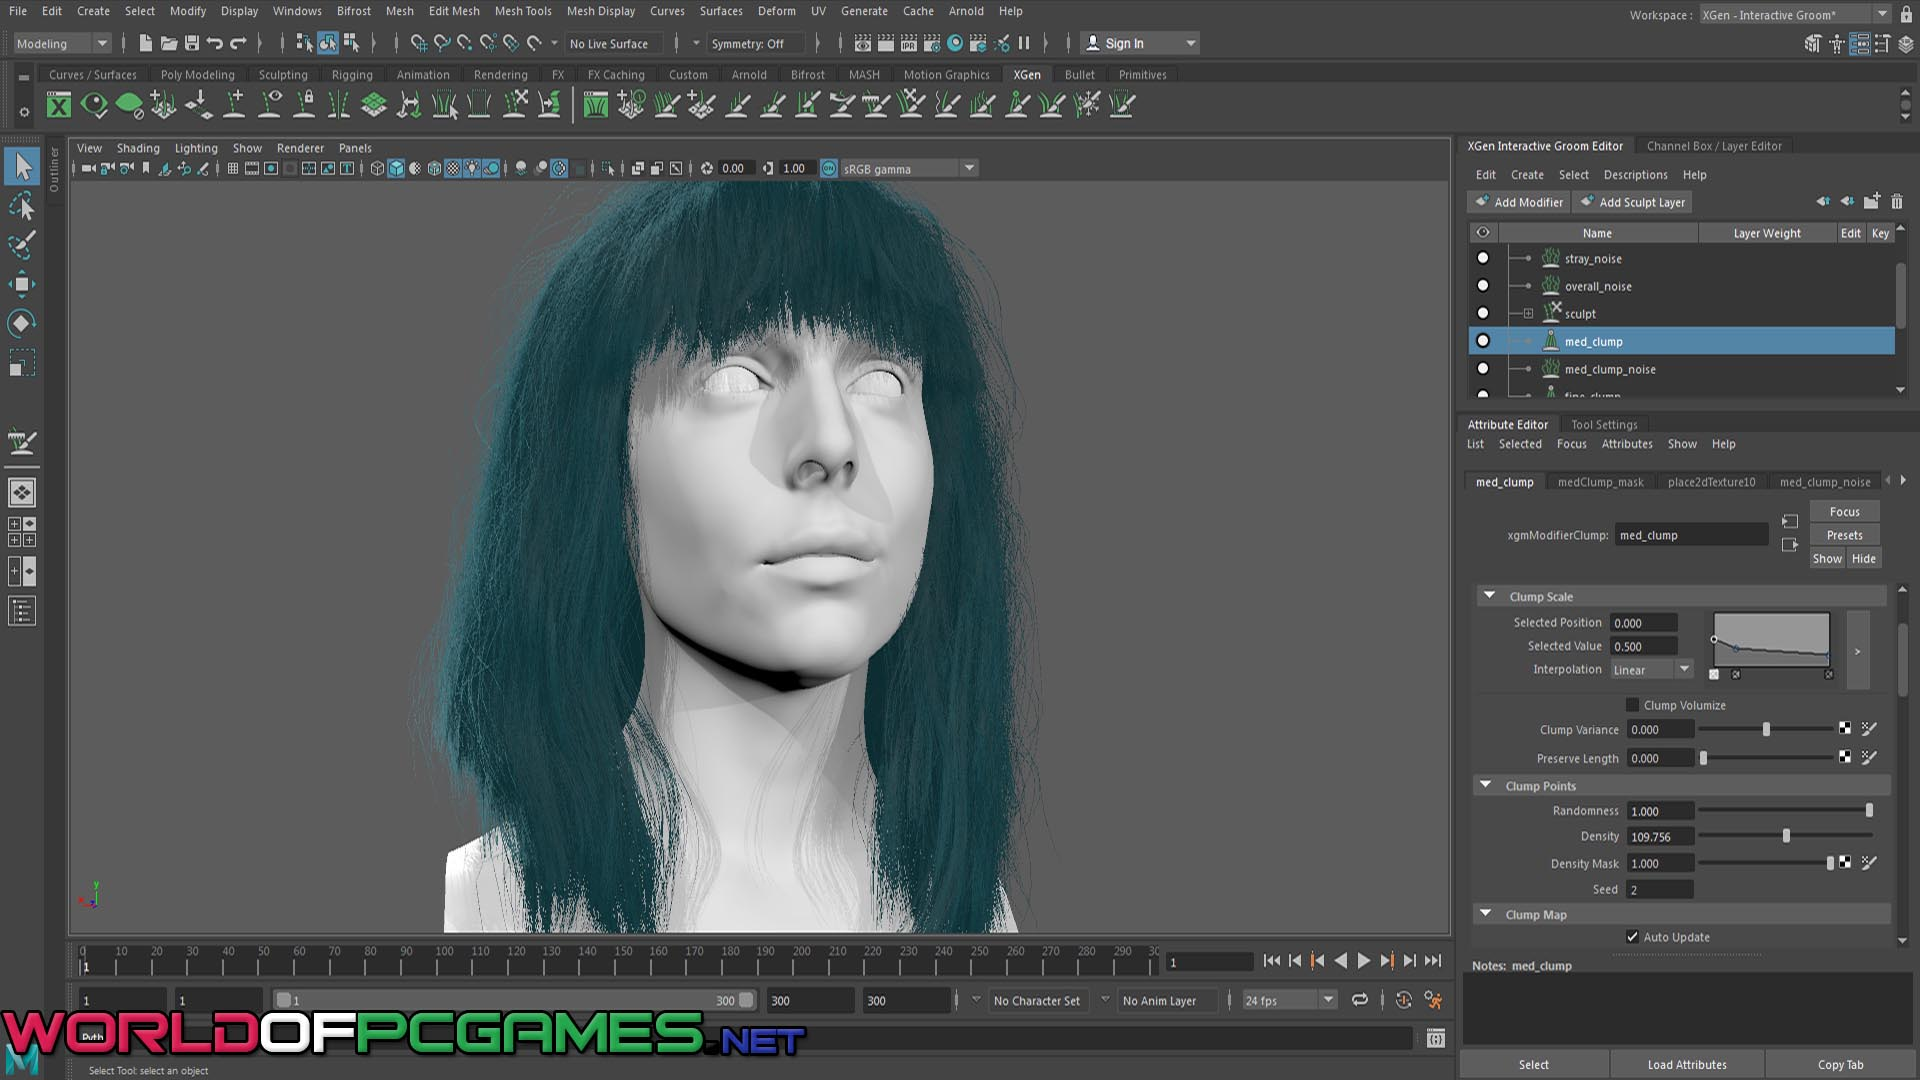 Autodesk Maya 2018 Free Download By Worldofpcgames.net